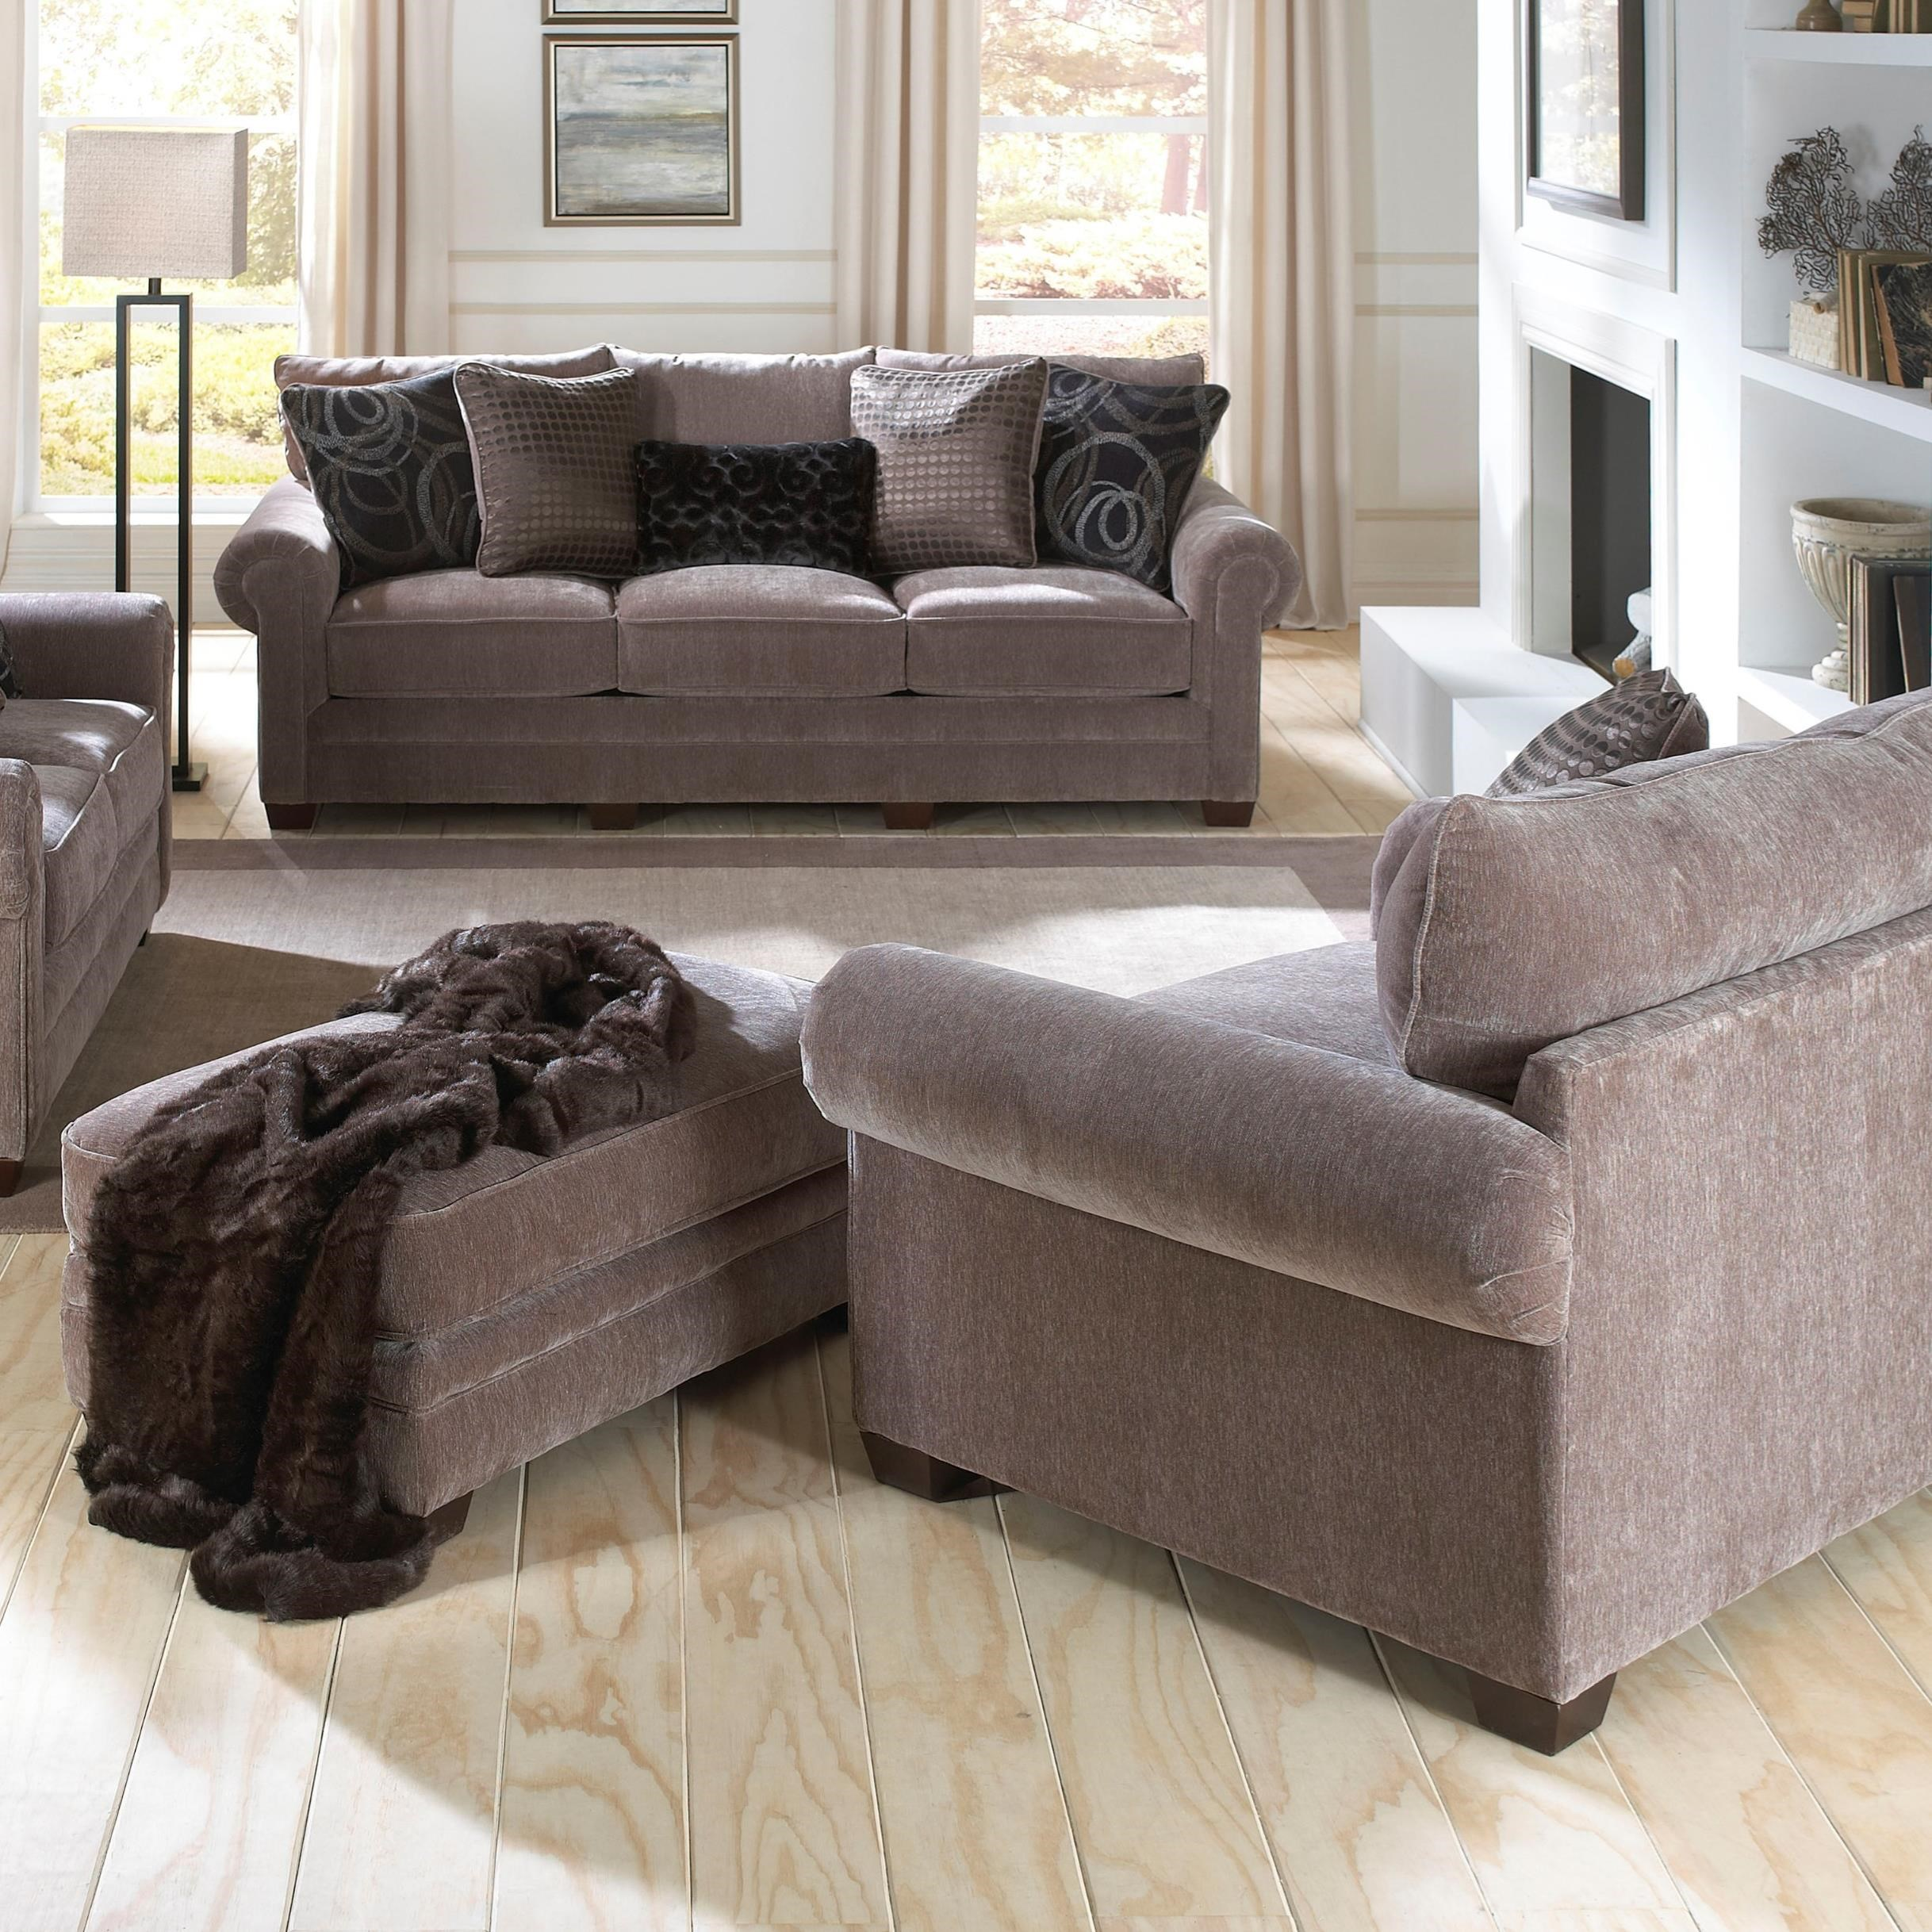 Austin Living Room Group by Jackson Furniture at Zak's Warehouse Clearance Center